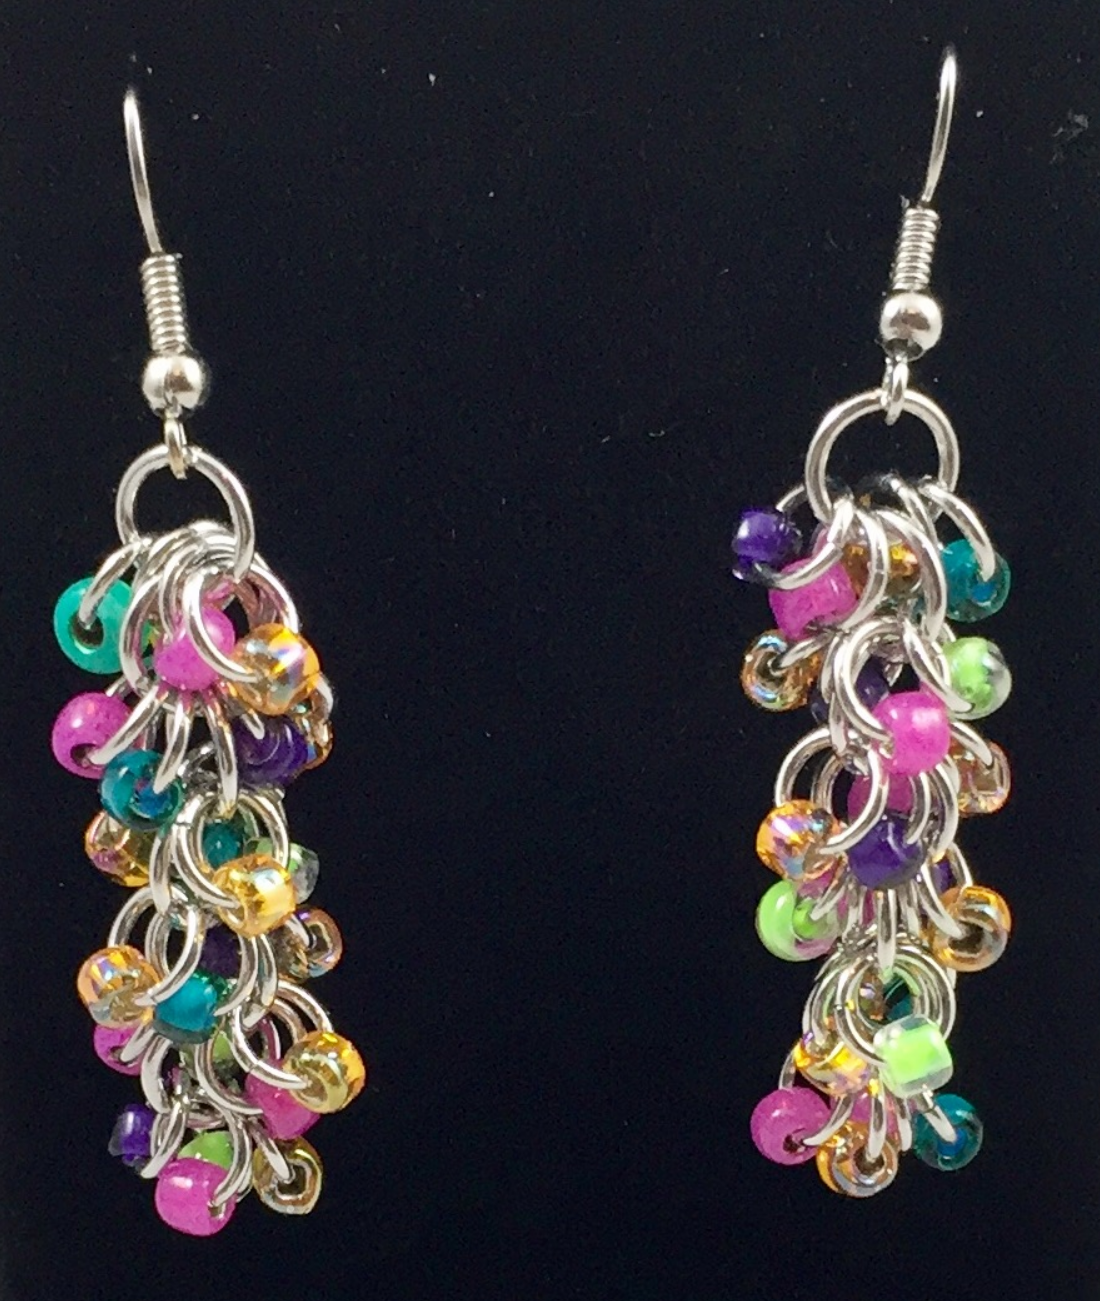 Shaggy Loop earrings with multicolored seed beads